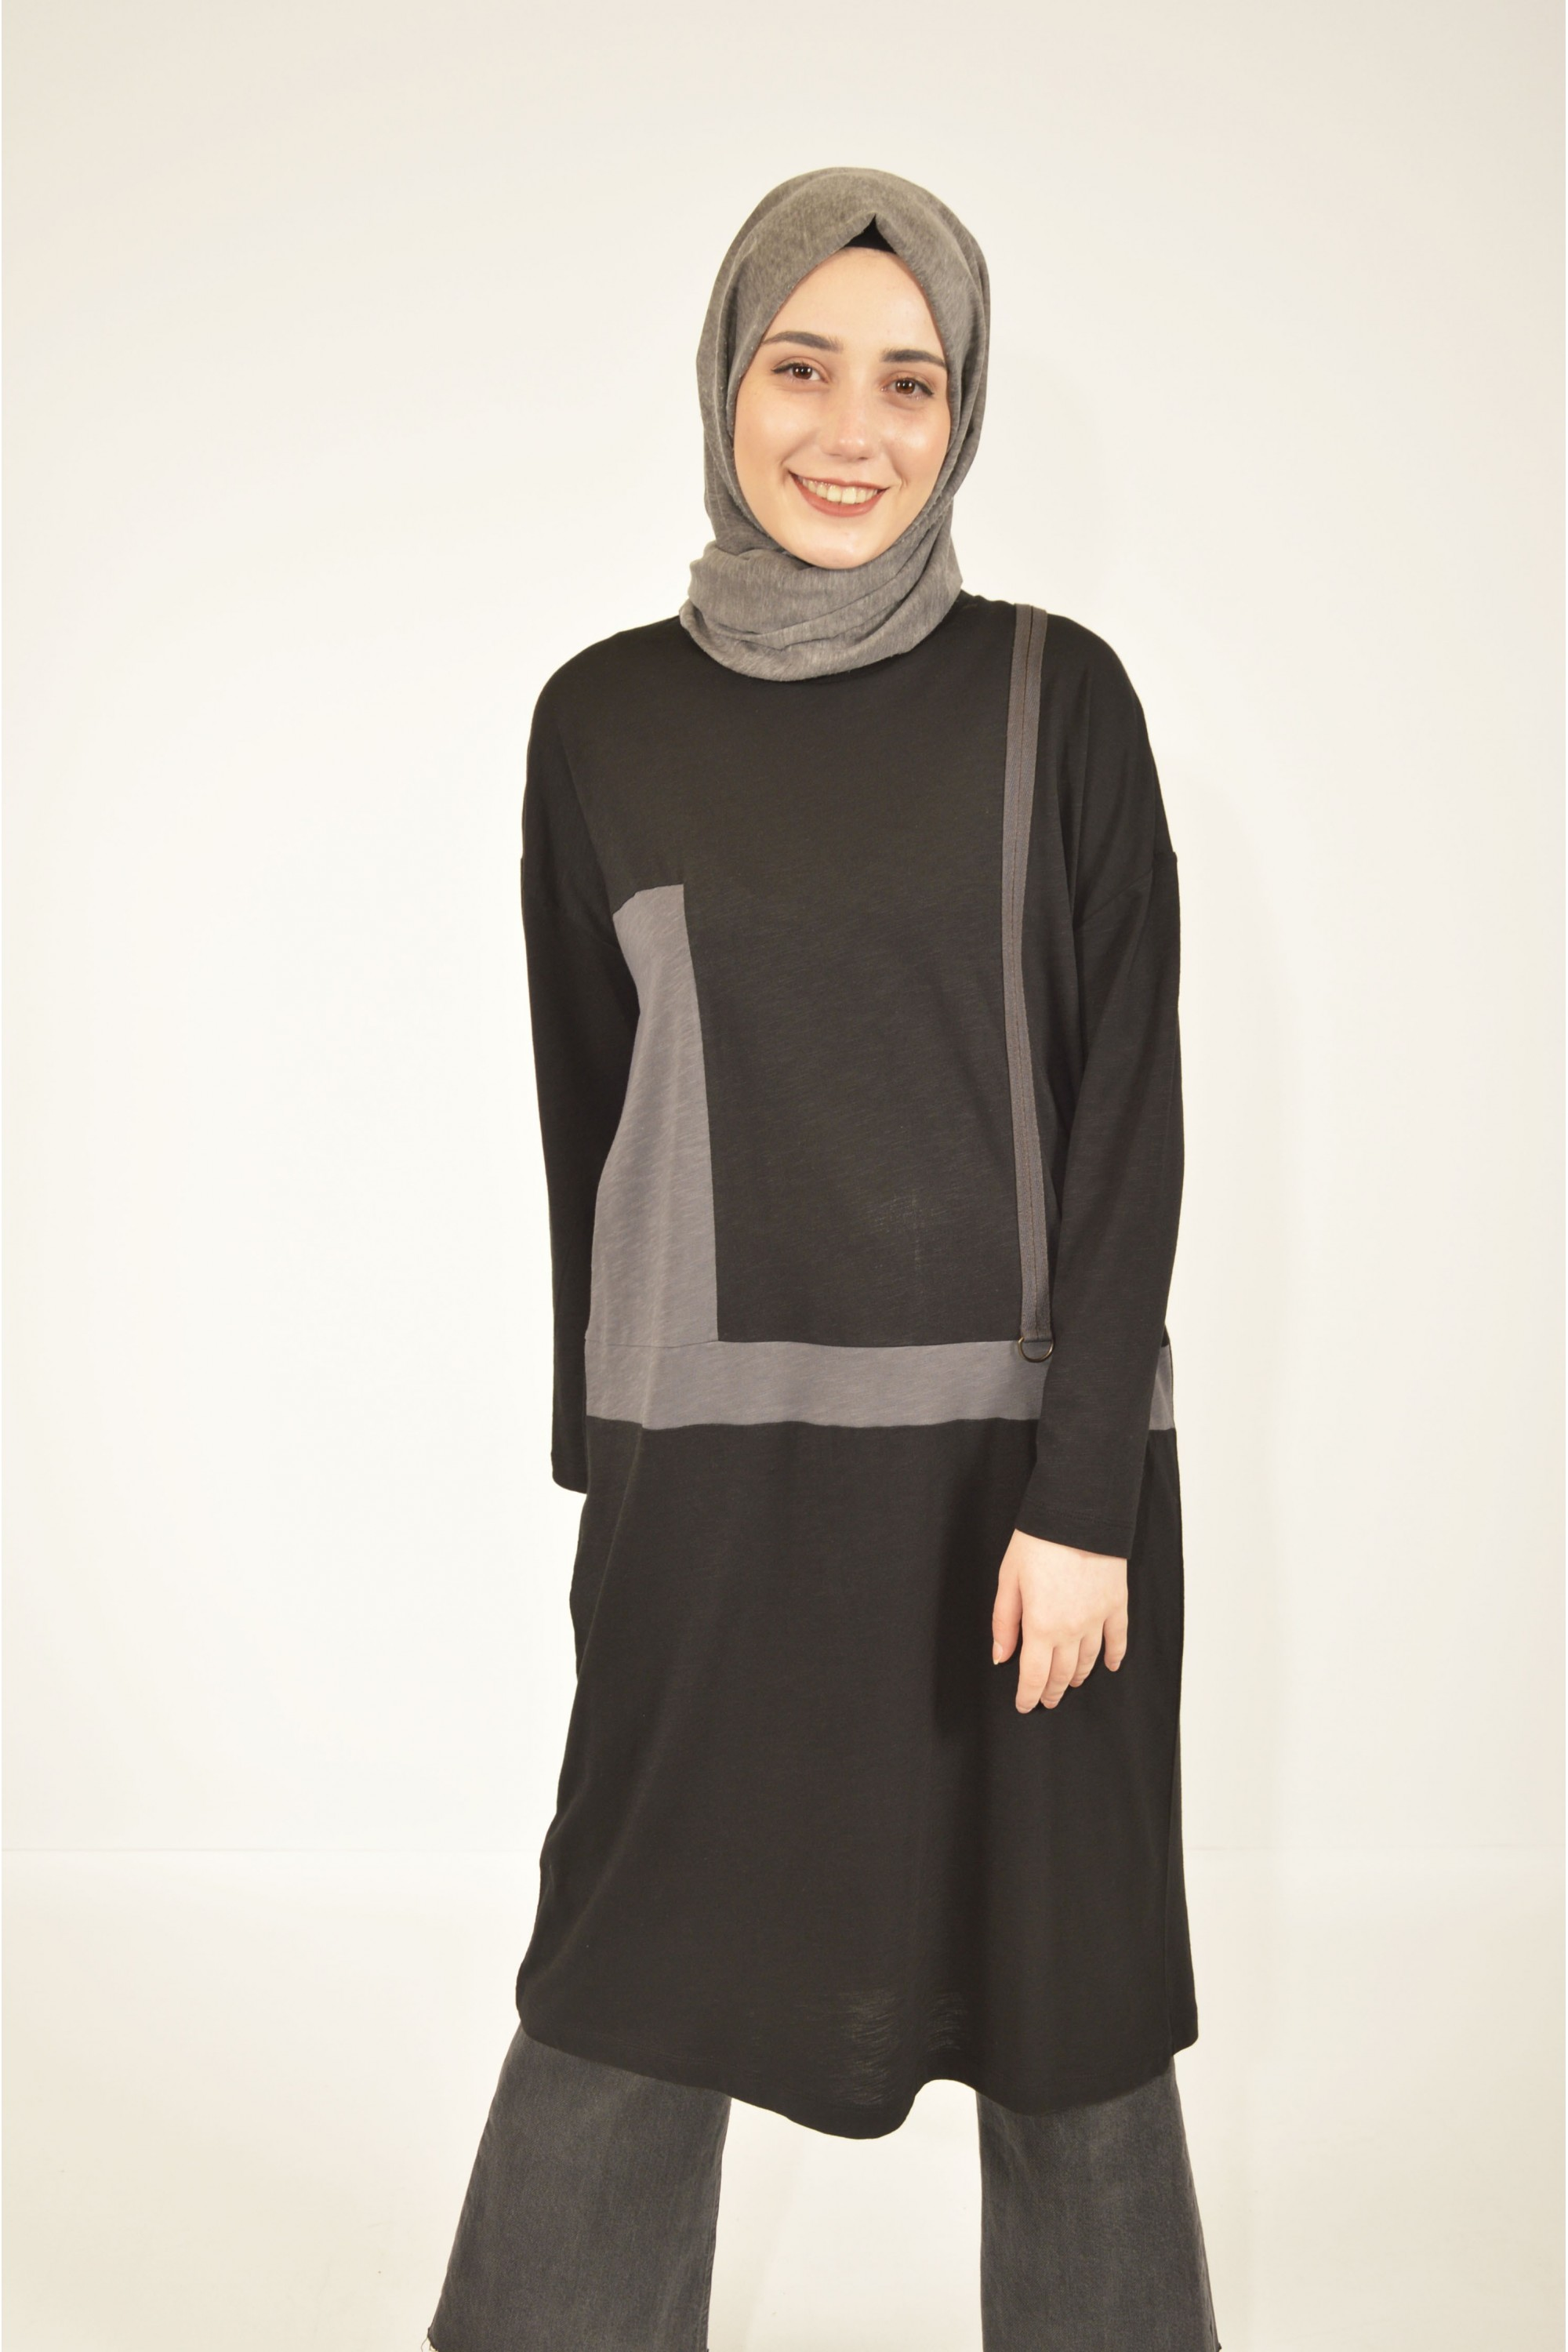 Accessory Detailed Garnished Tunic